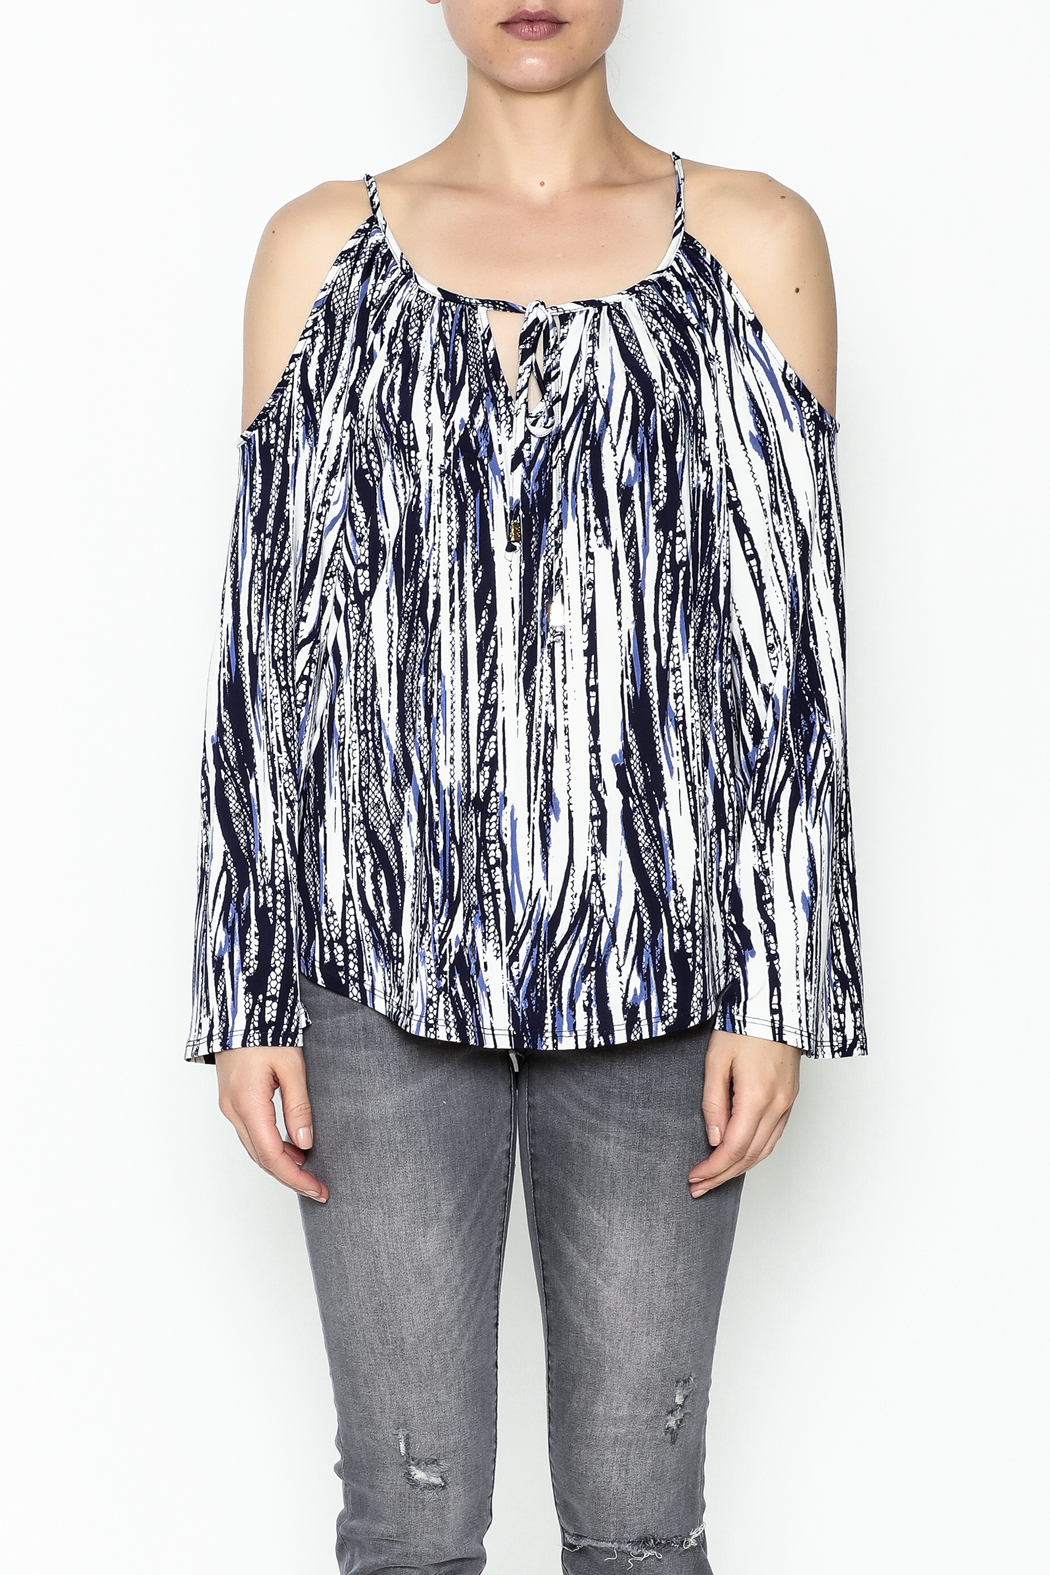 Veronica M Amy Cold Shoulder Top - Front Full Image